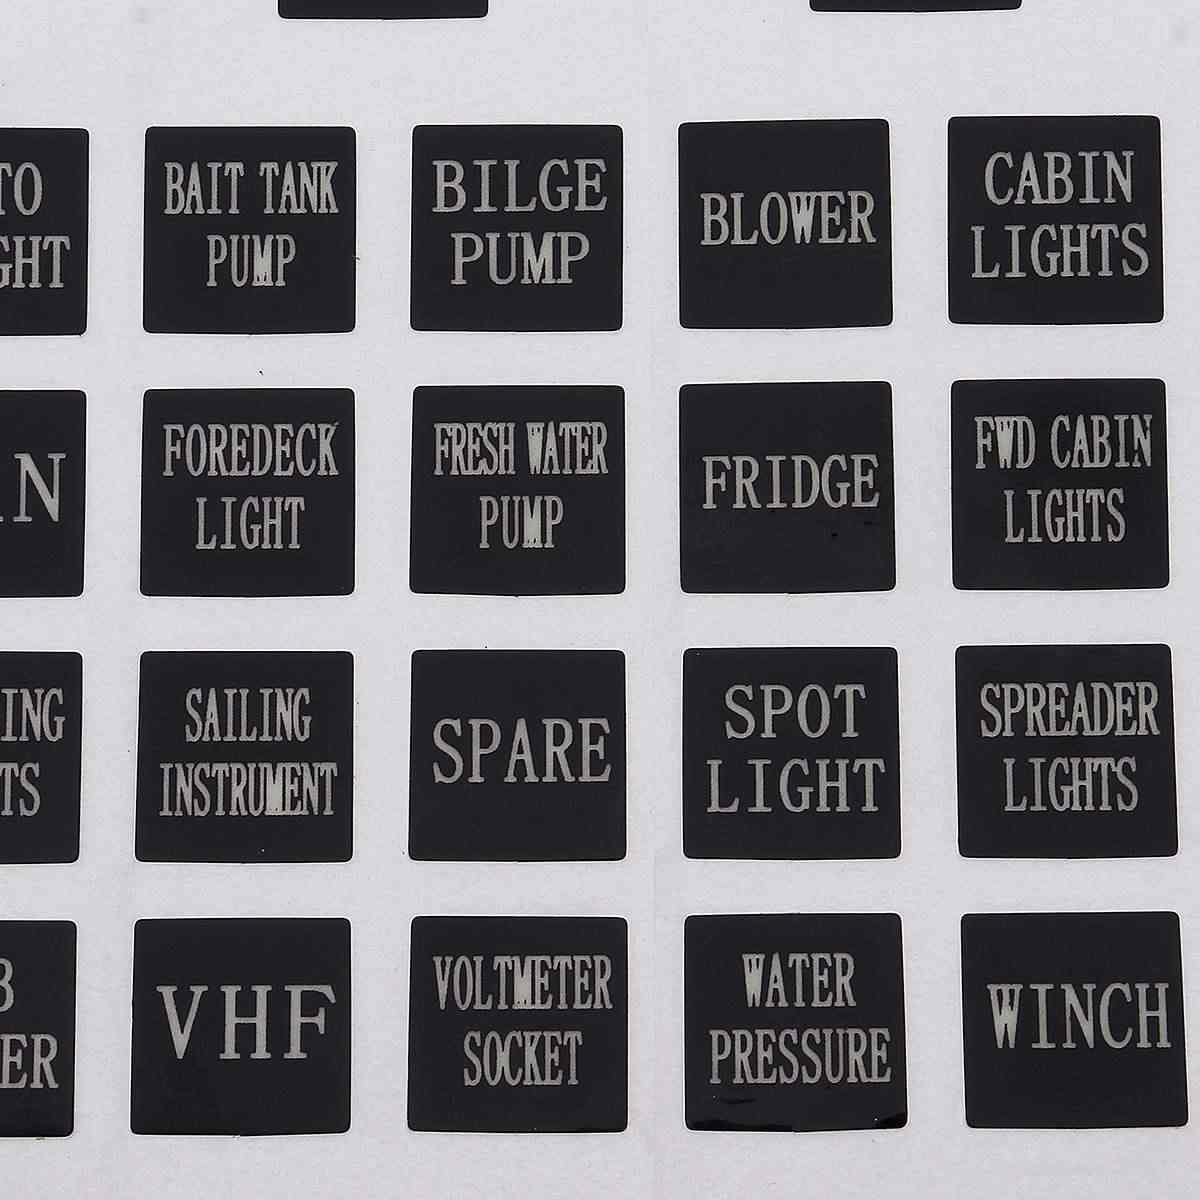 120 Sticker Rocker Switch Label Decal Circuit Panel Luminous Sticker For Car Marine Boat Truck Instrument Switches Relays Decor